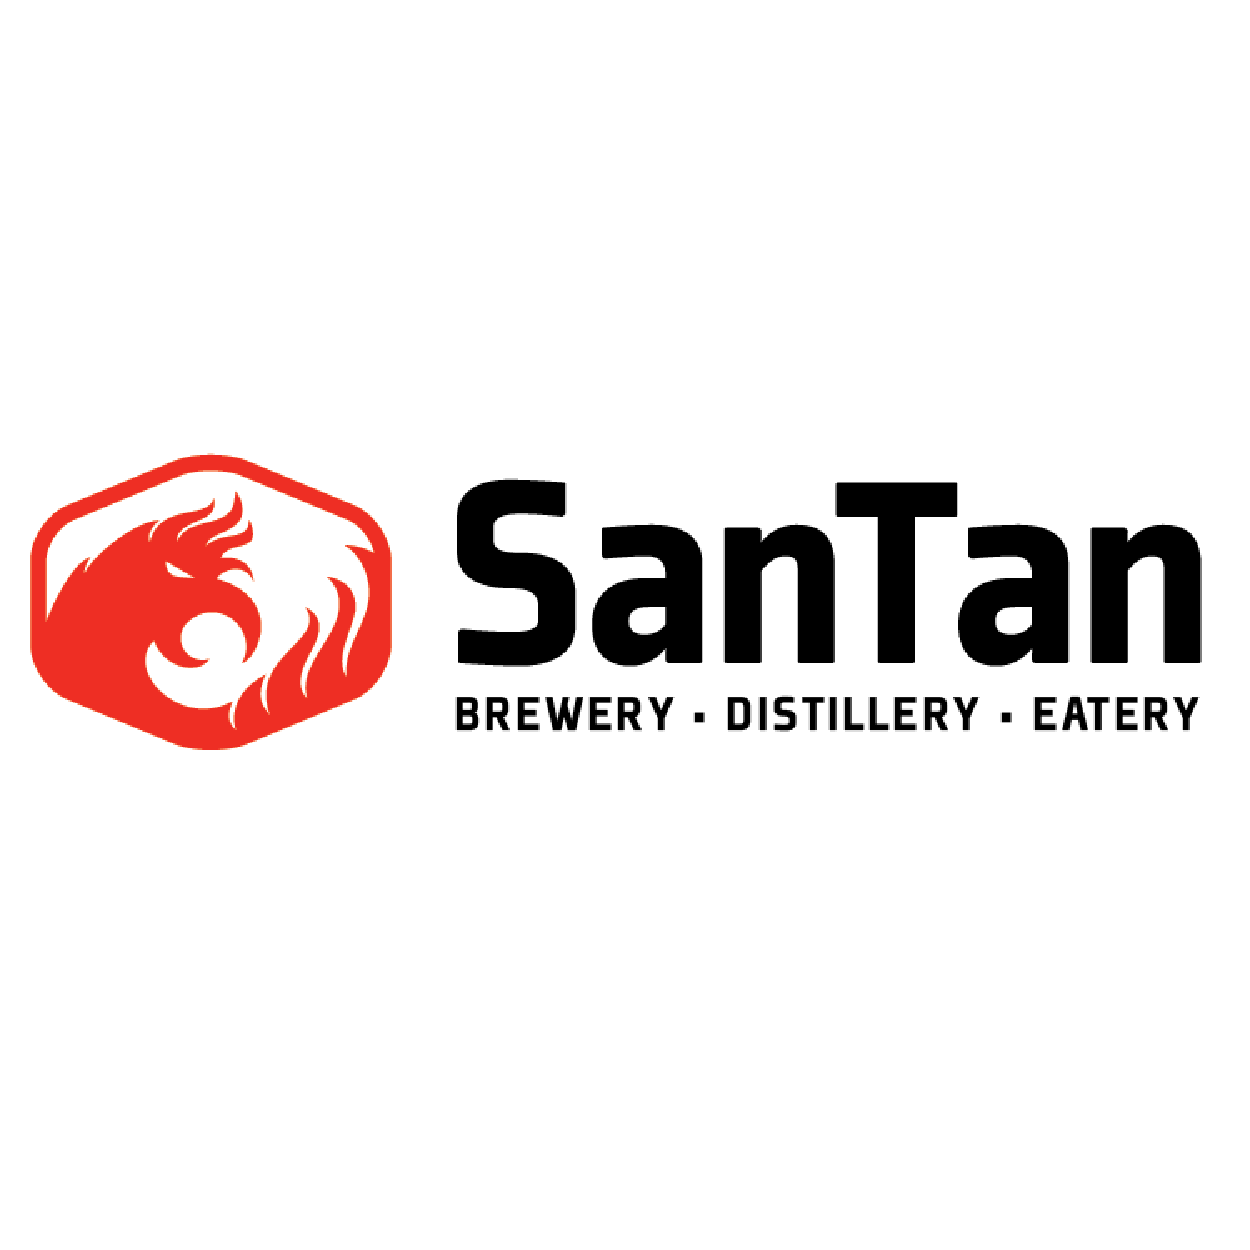 Chef Brant Gasparek - Head Distiller, Chef SanTan Brewing CompanyHighlighting BAMBOX, Yobro